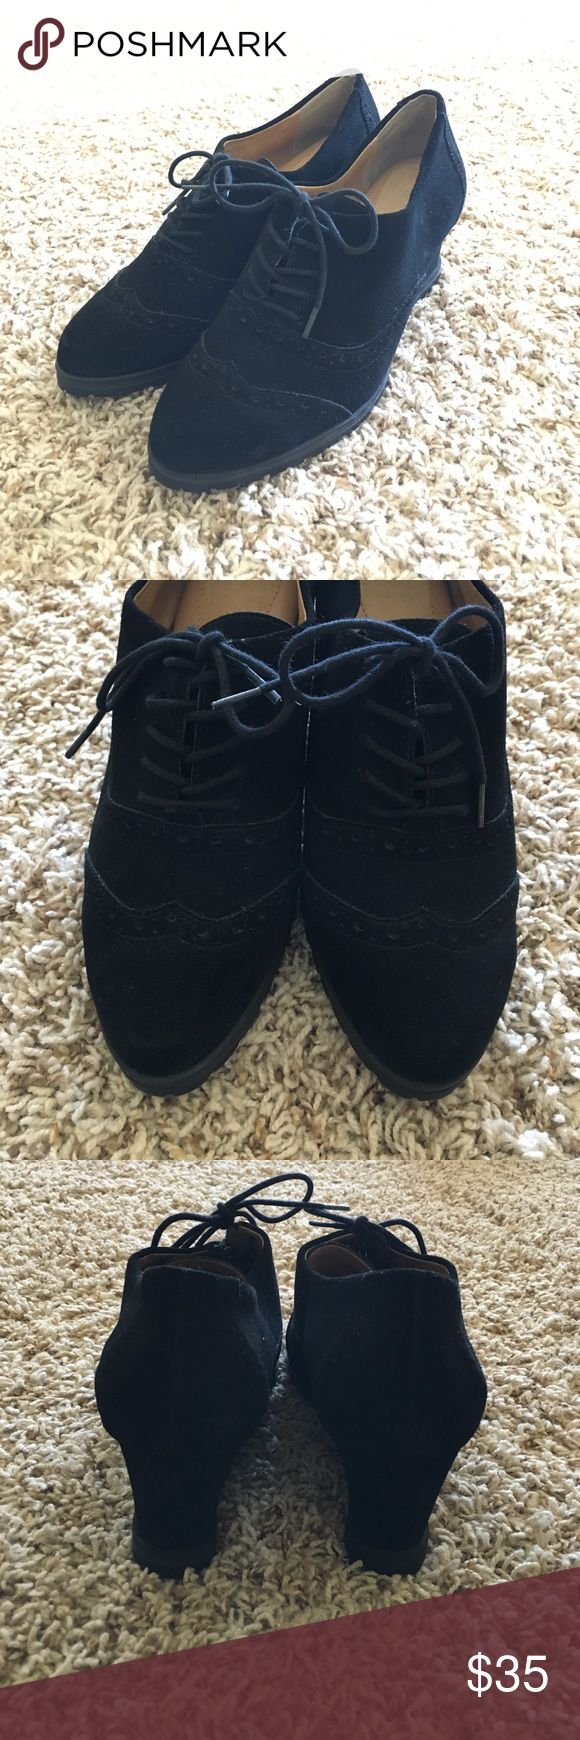 Ellen Tracy Black Suede Oxford Wedges Cute black suede oxfords. They have a wedge and rubber soles. Very comfy with soft and comfy insoles. Practically new. Approximately 2.5 in heel. Ellen Tracy Shoes